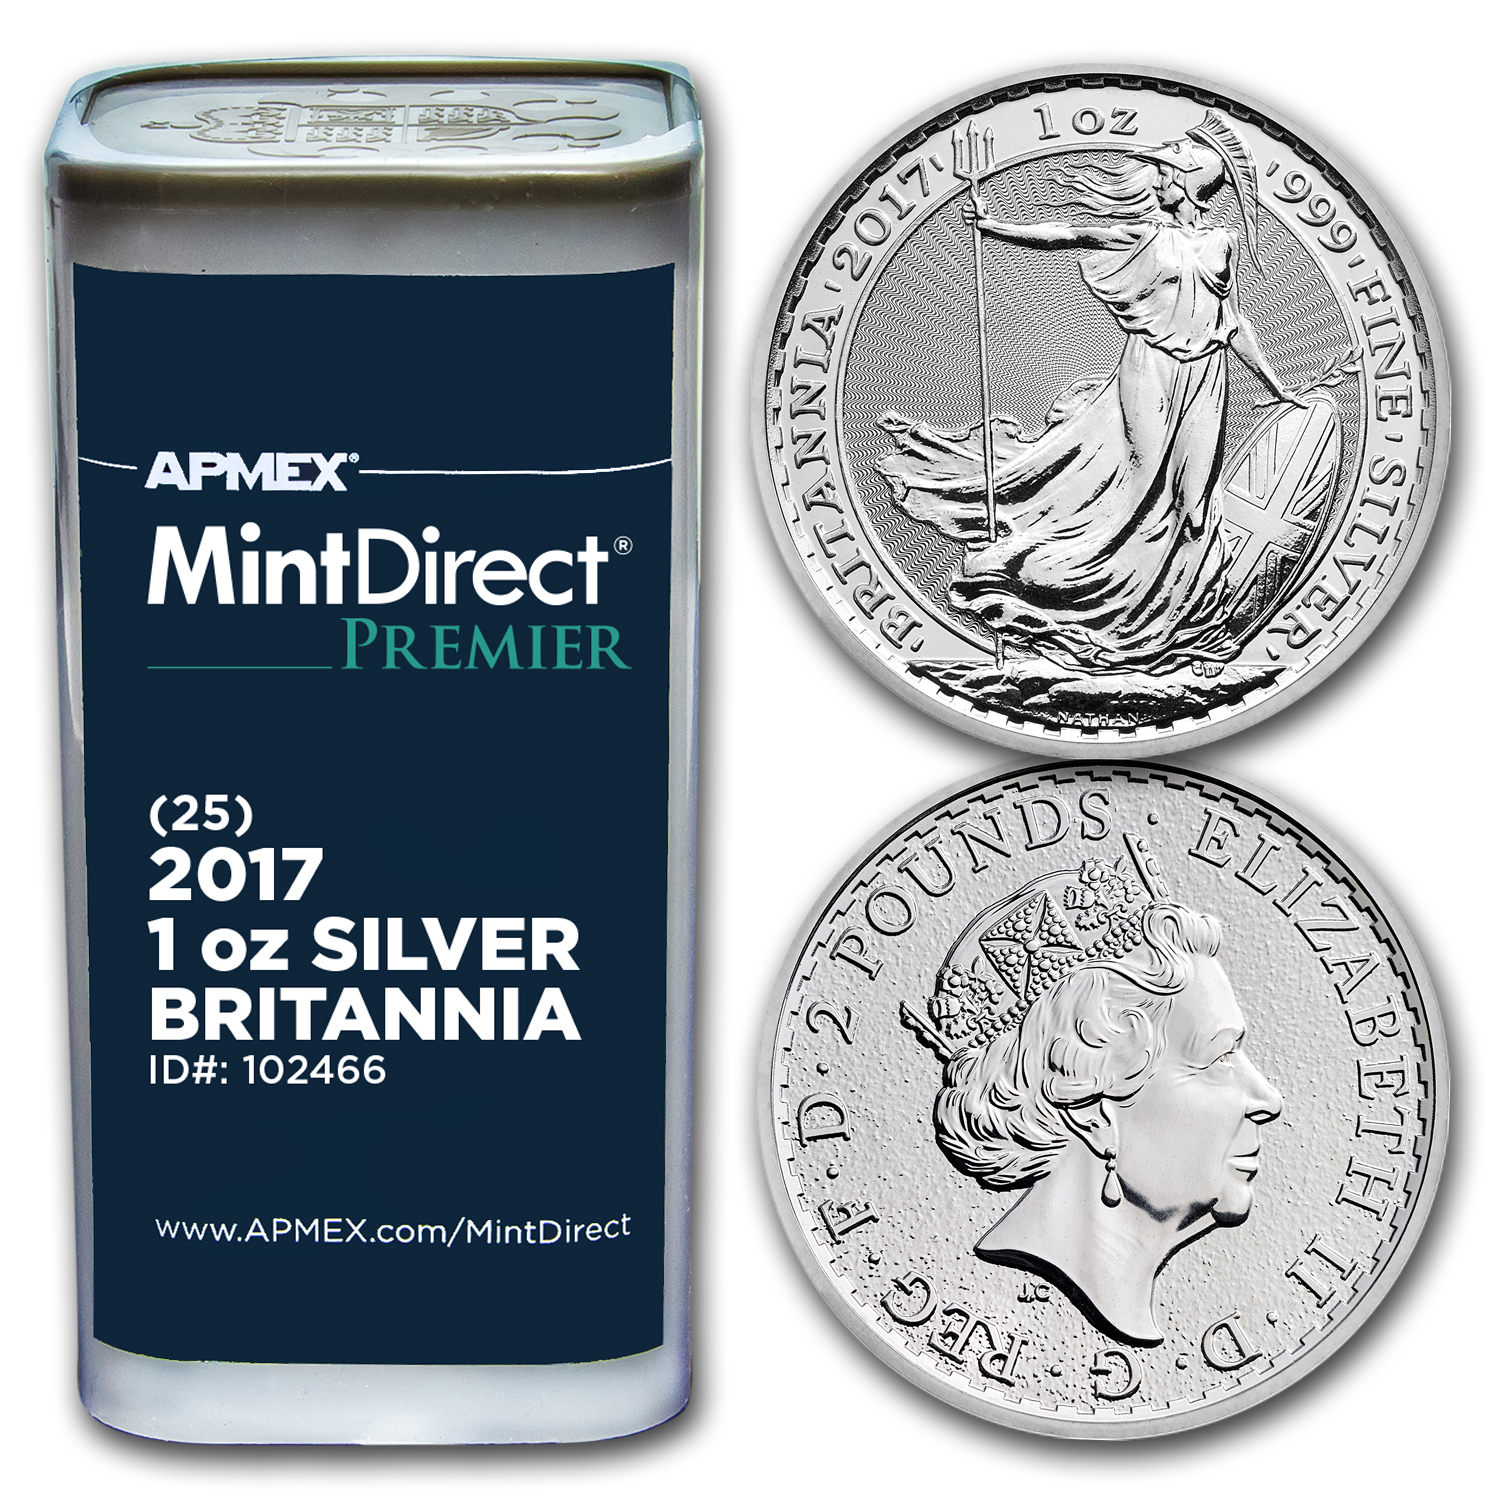 2017 GB 1 oz Silver Britannia (25-Coin MintDirect Premier® Tube)